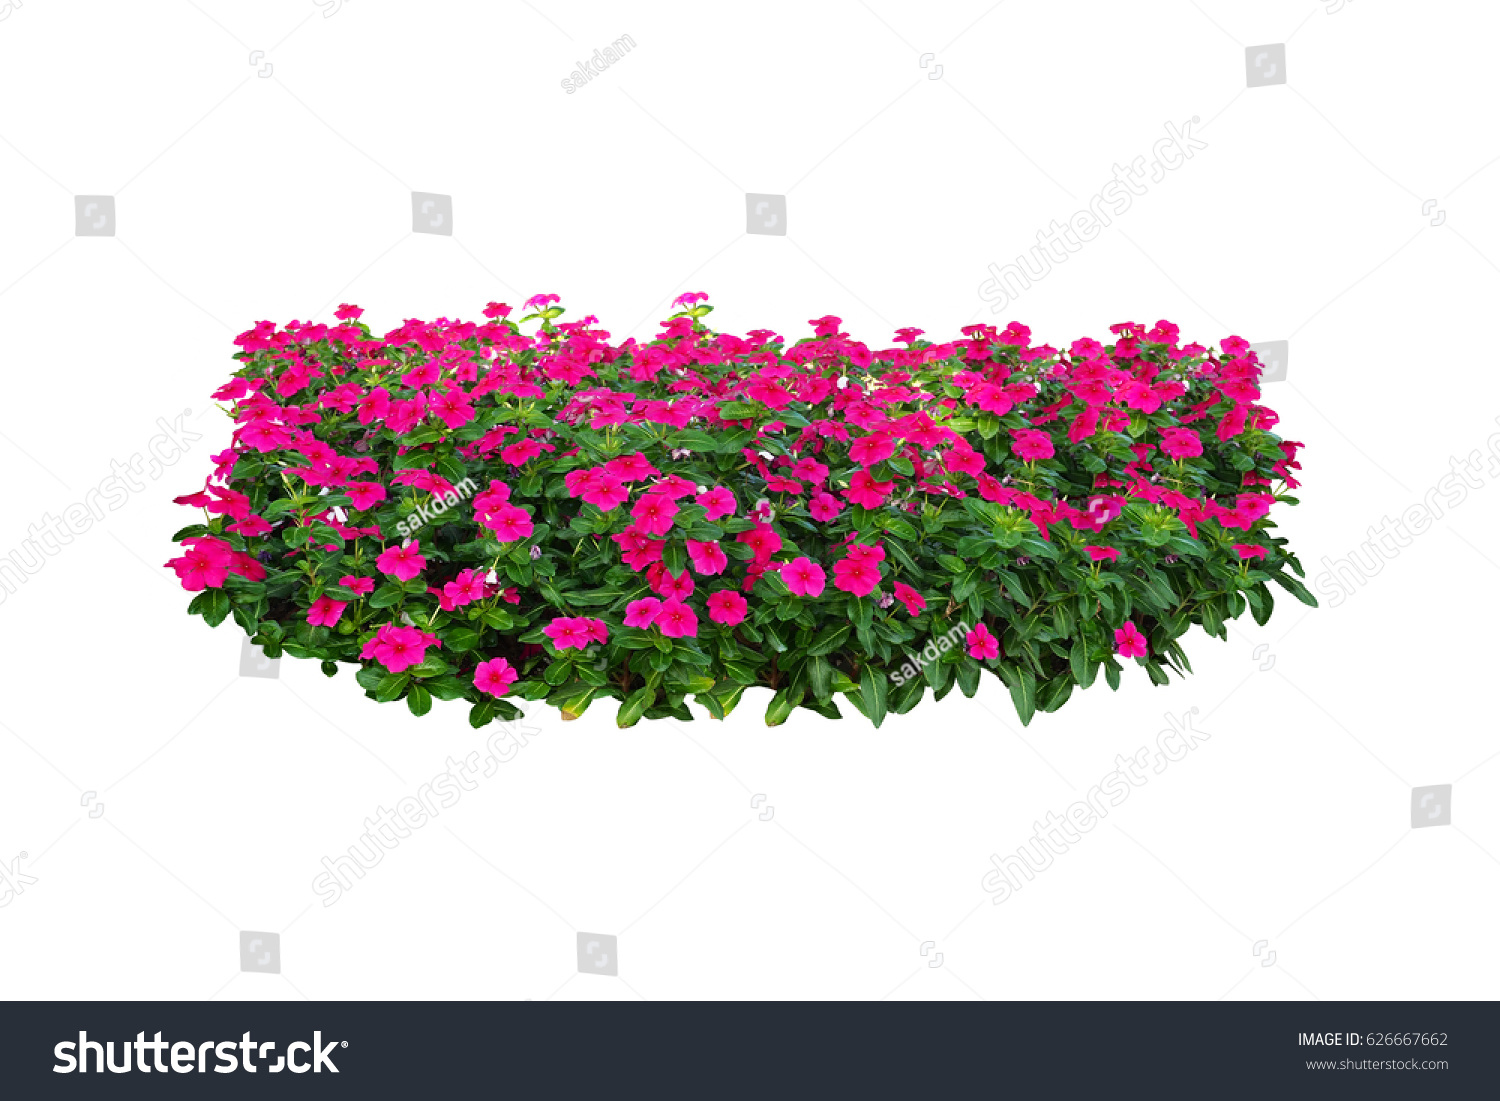 Pink Flowers Bush Tree Isolated On White Background With Clipping